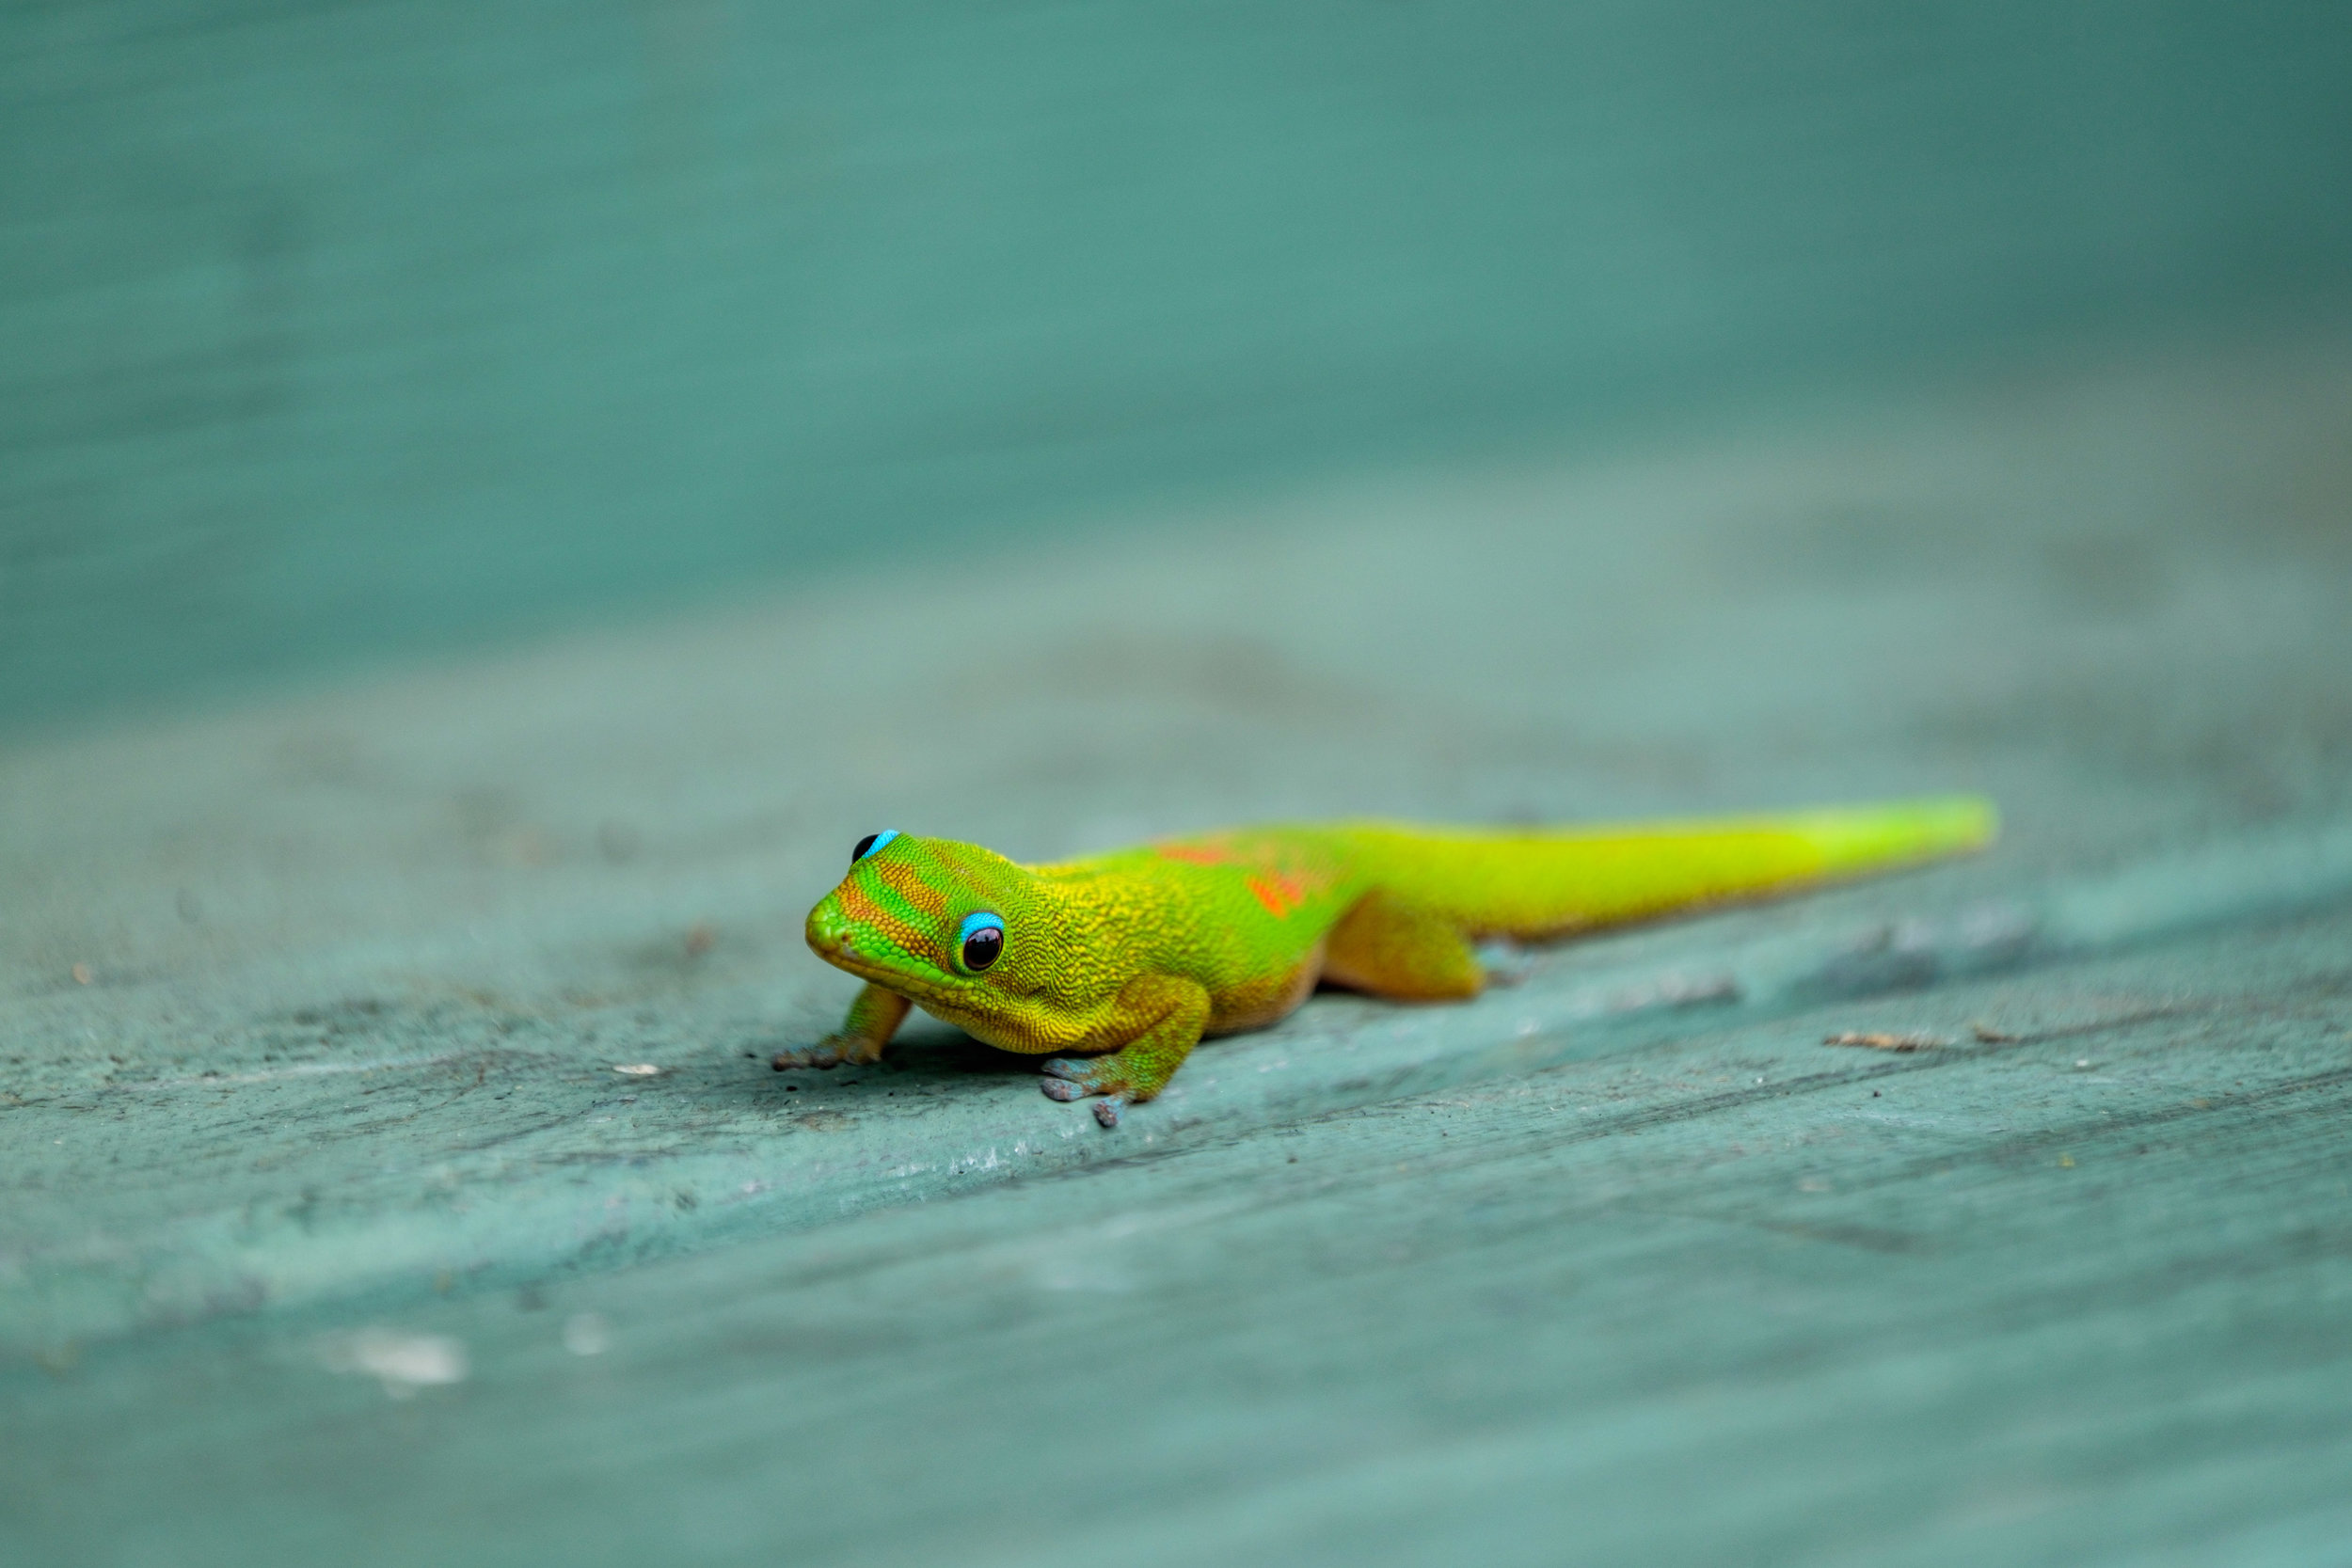 We found this colorful little lizard on a bench outside a thriftstore.